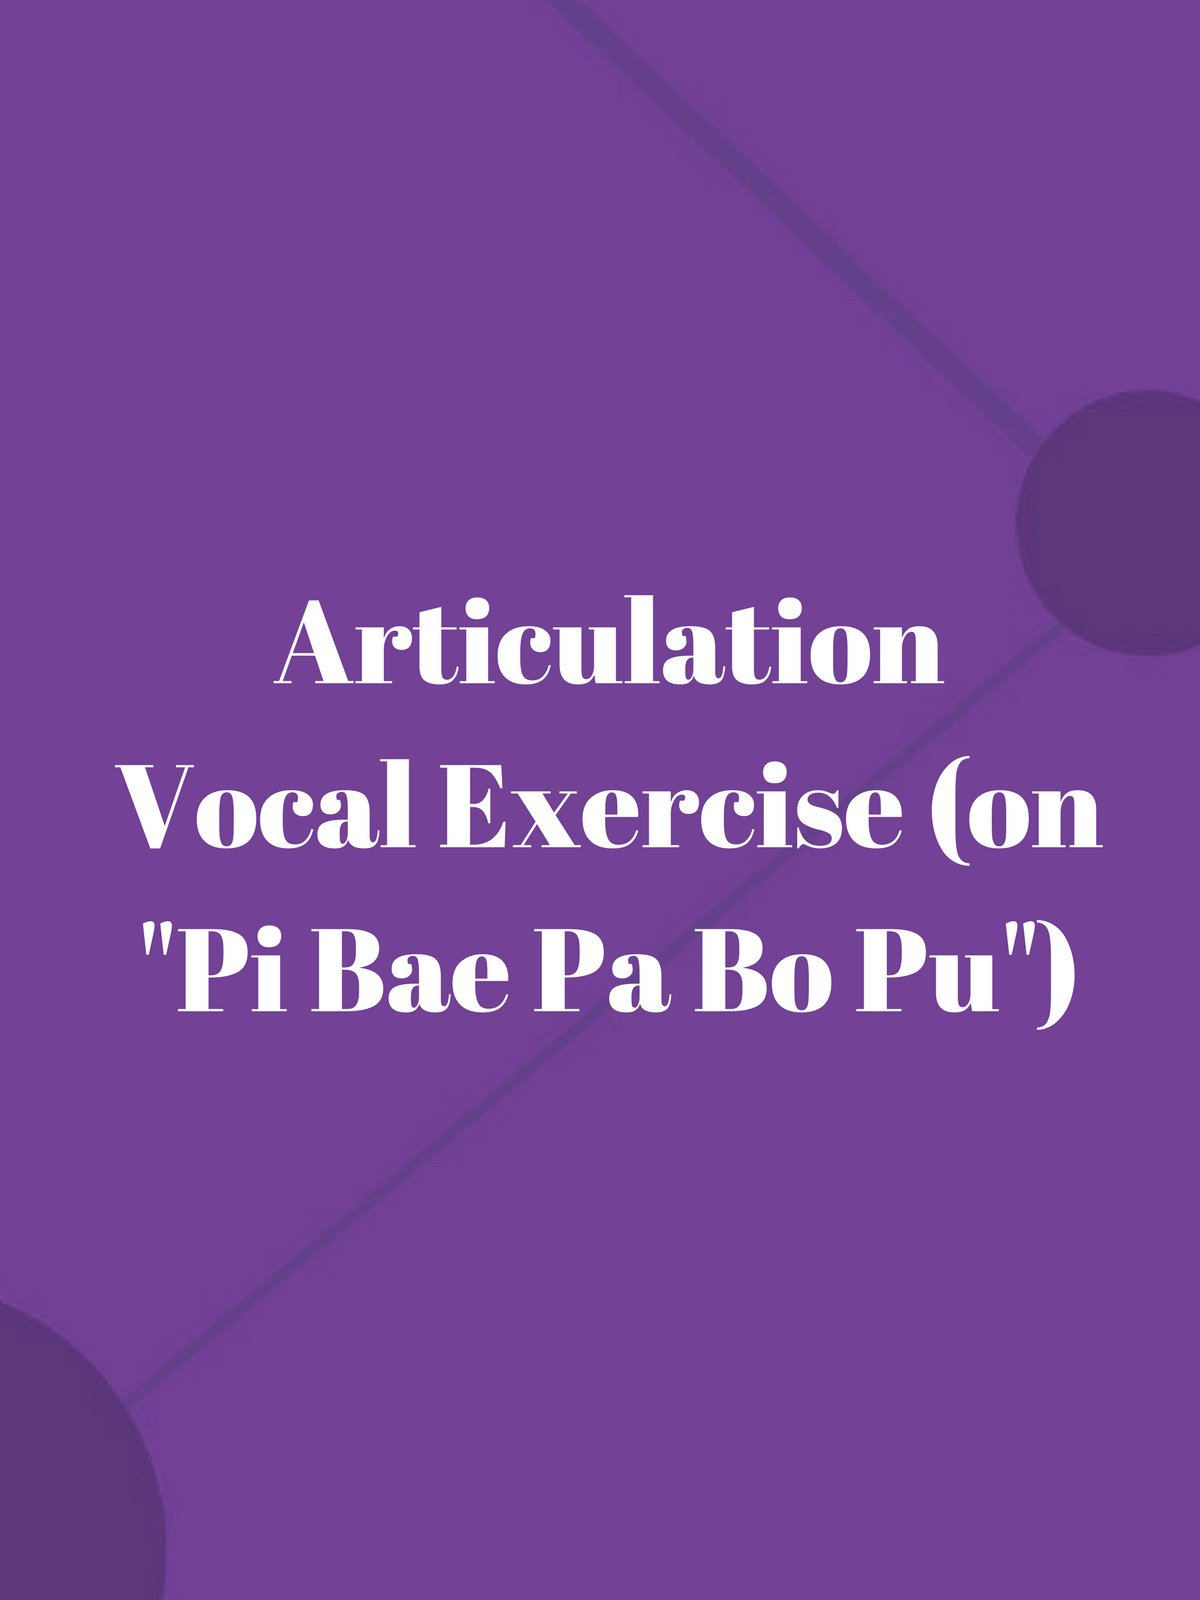 """Articulation Vocal Exercise (on """"Pi Bae Pa Bo Pu"""")"""